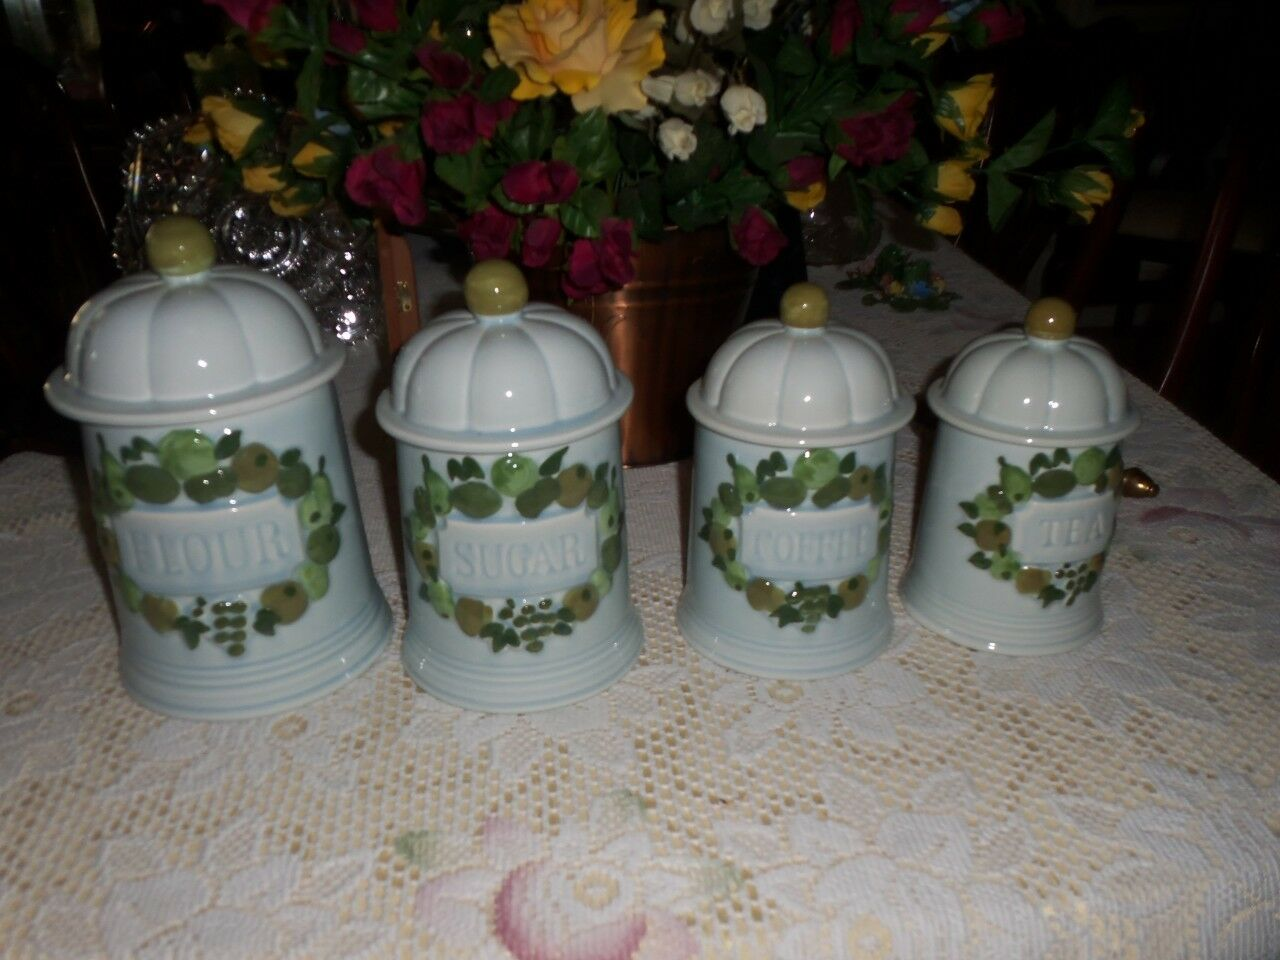 A set of 4 Vintage Canisters   Storage Jars with lids from Los Angeles Potteries